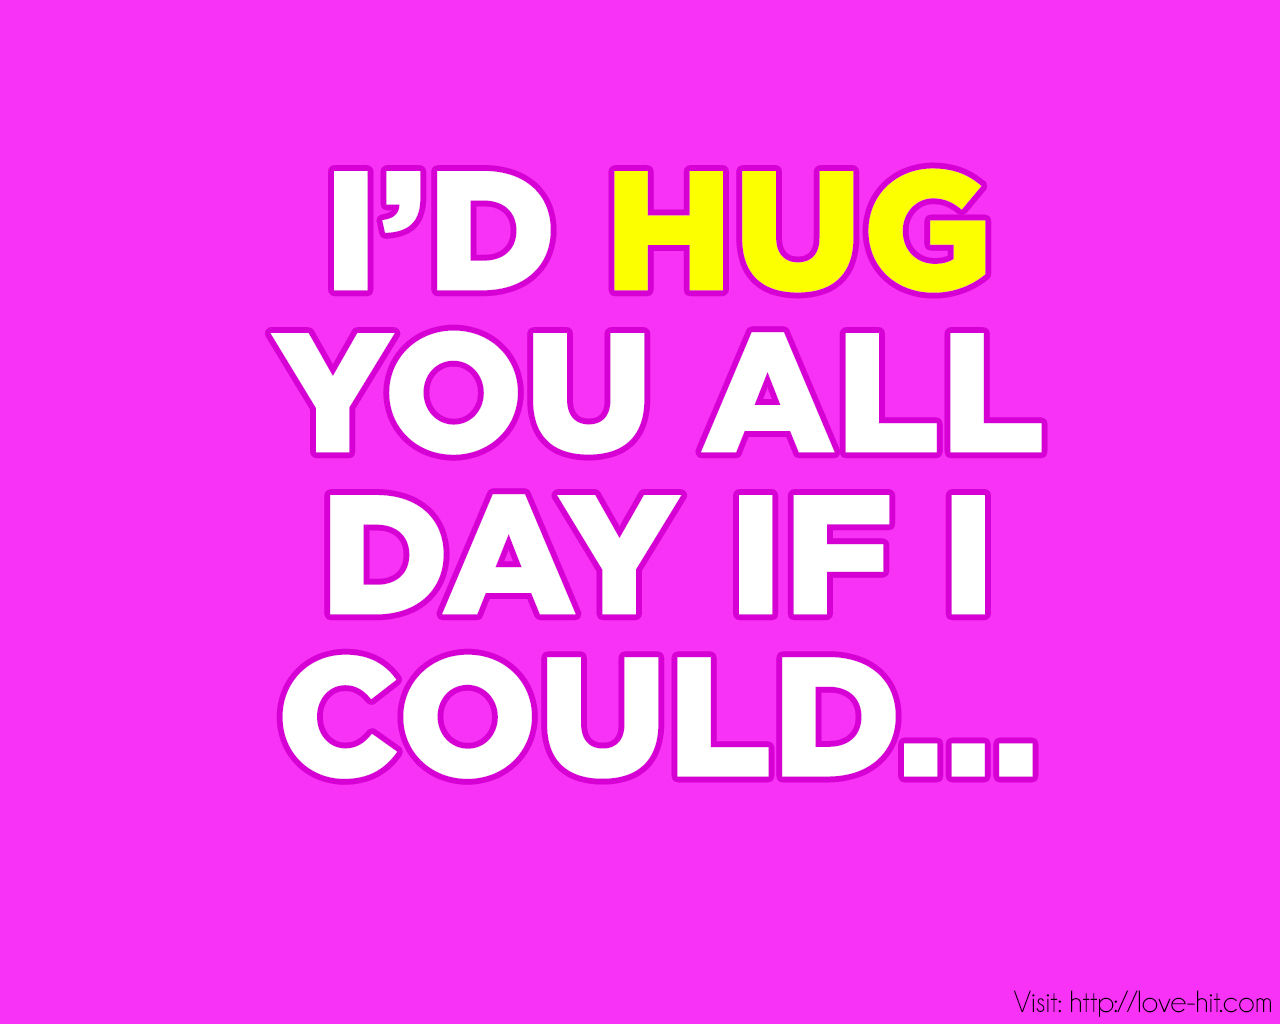 I would hug you all day and forever if i could...